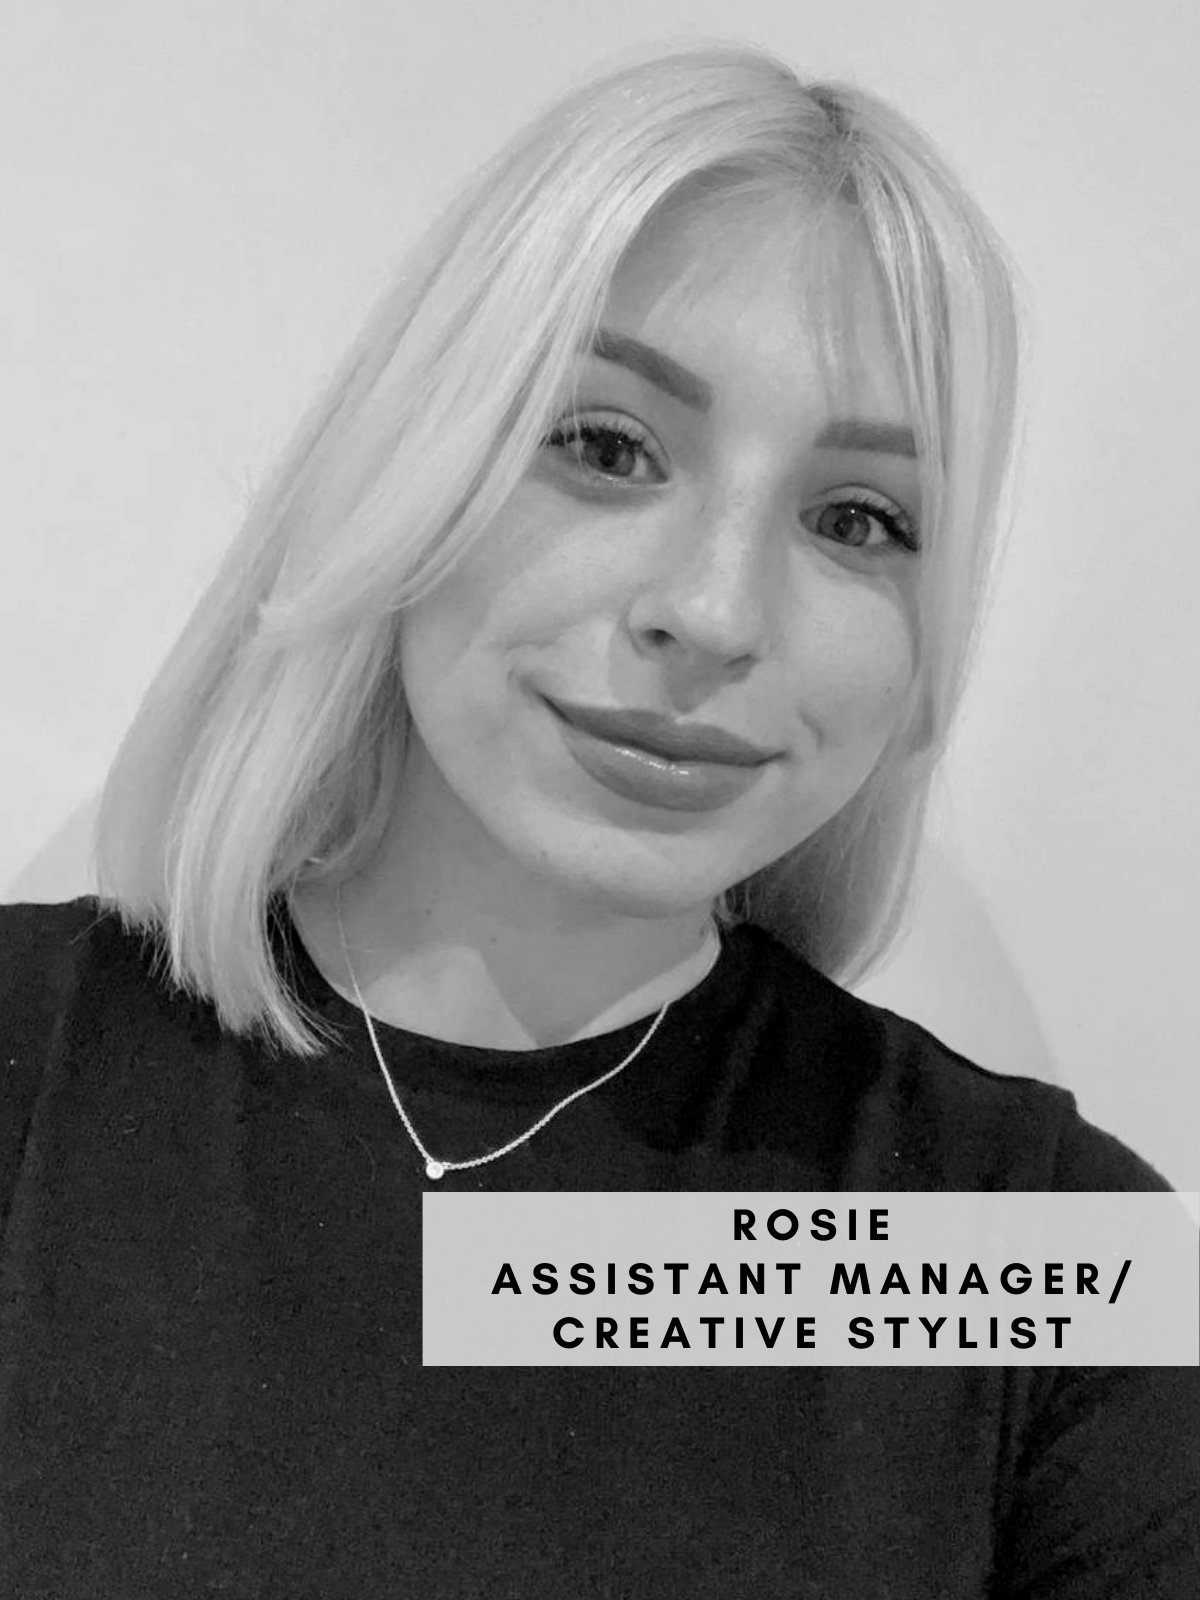 Rosie – Assistant Manager/Creative Stylist